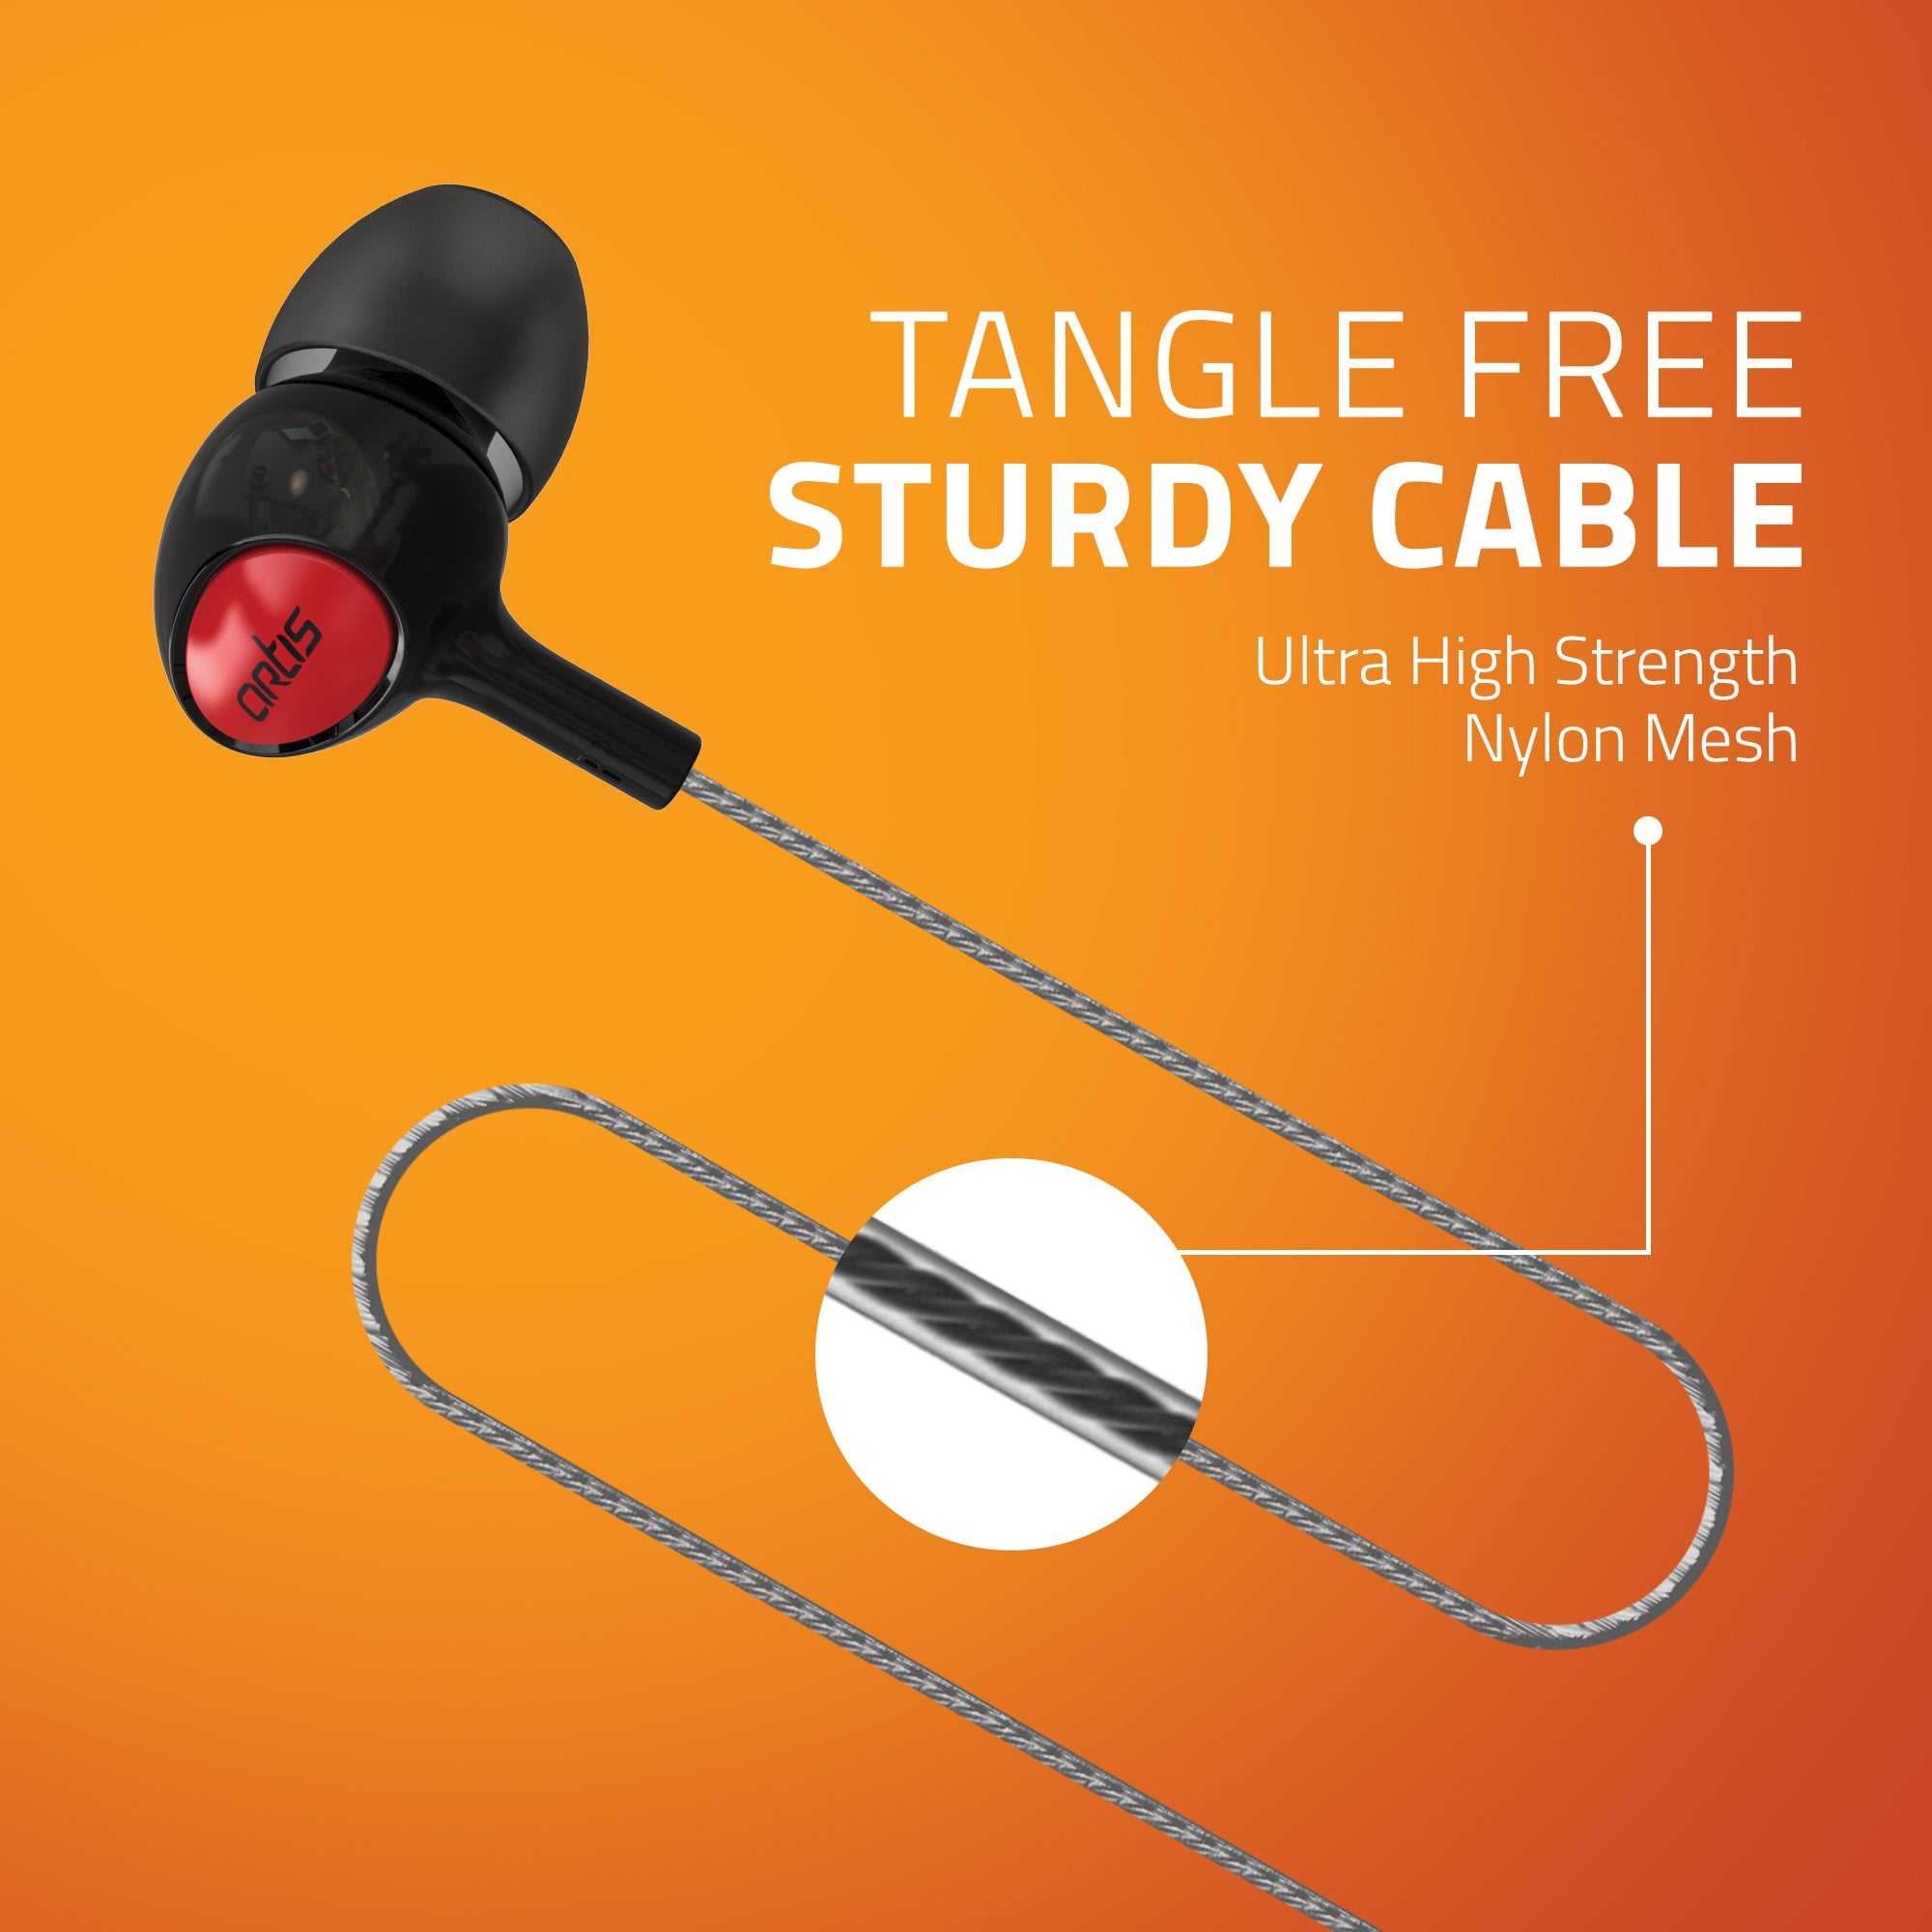 E400M Artis Earphones With Tangle Free Sturdy Cable